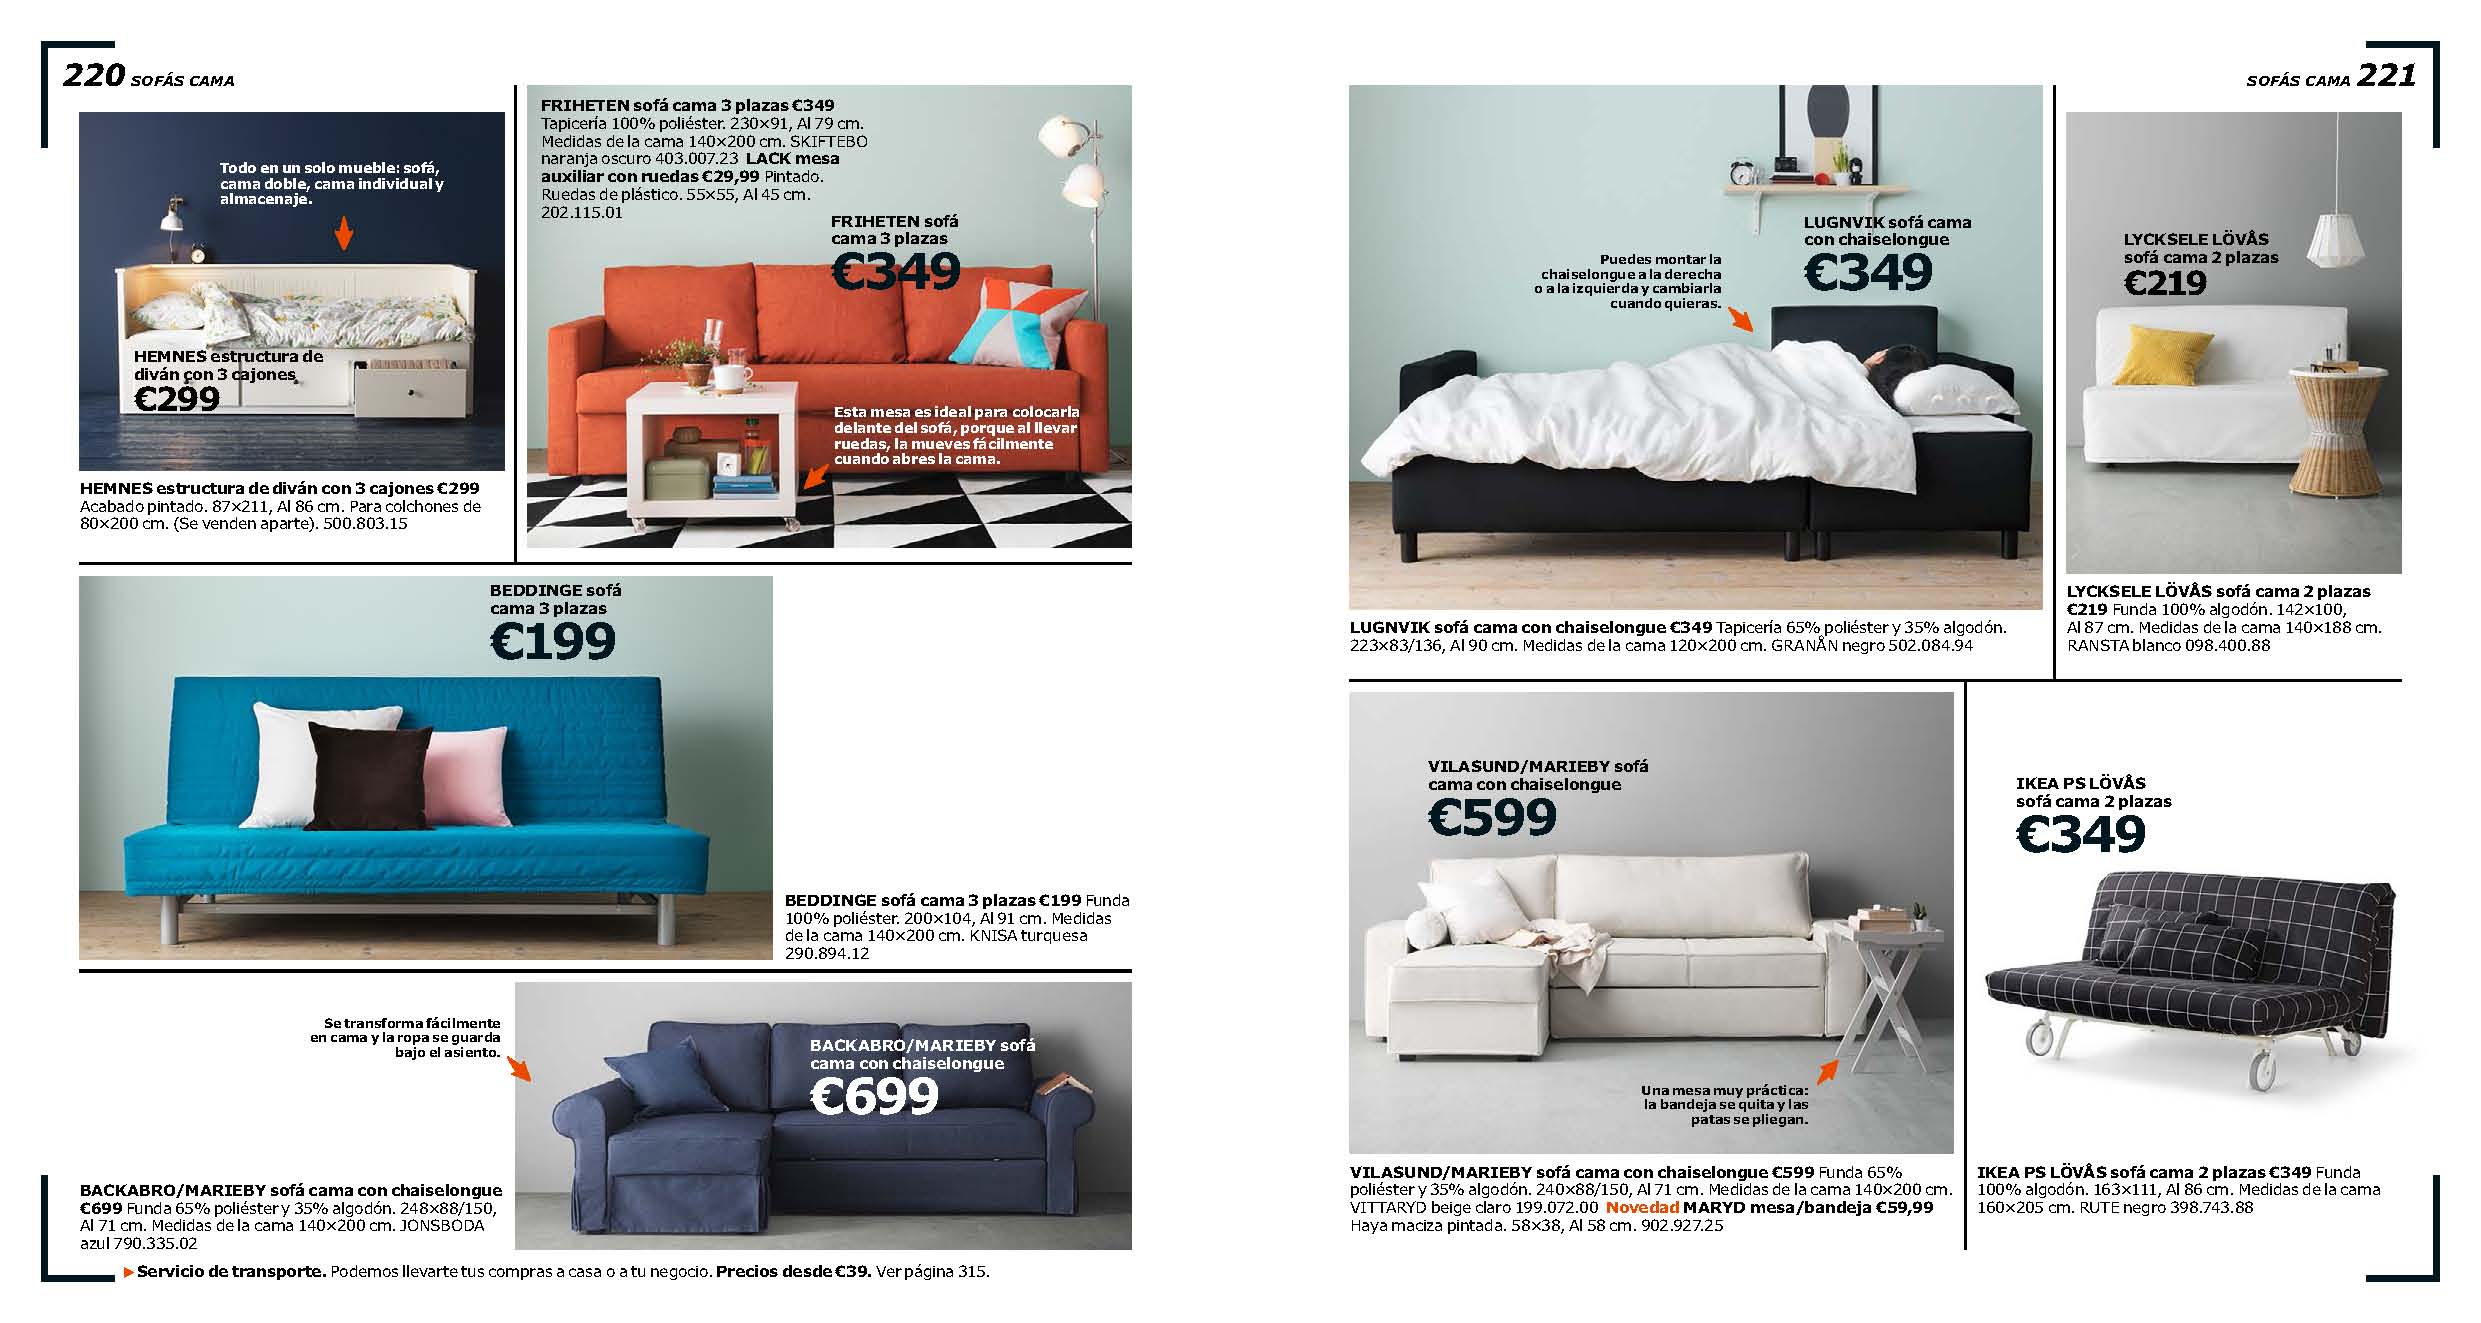 catalogo decorar con ikea 2016 es_Page_111